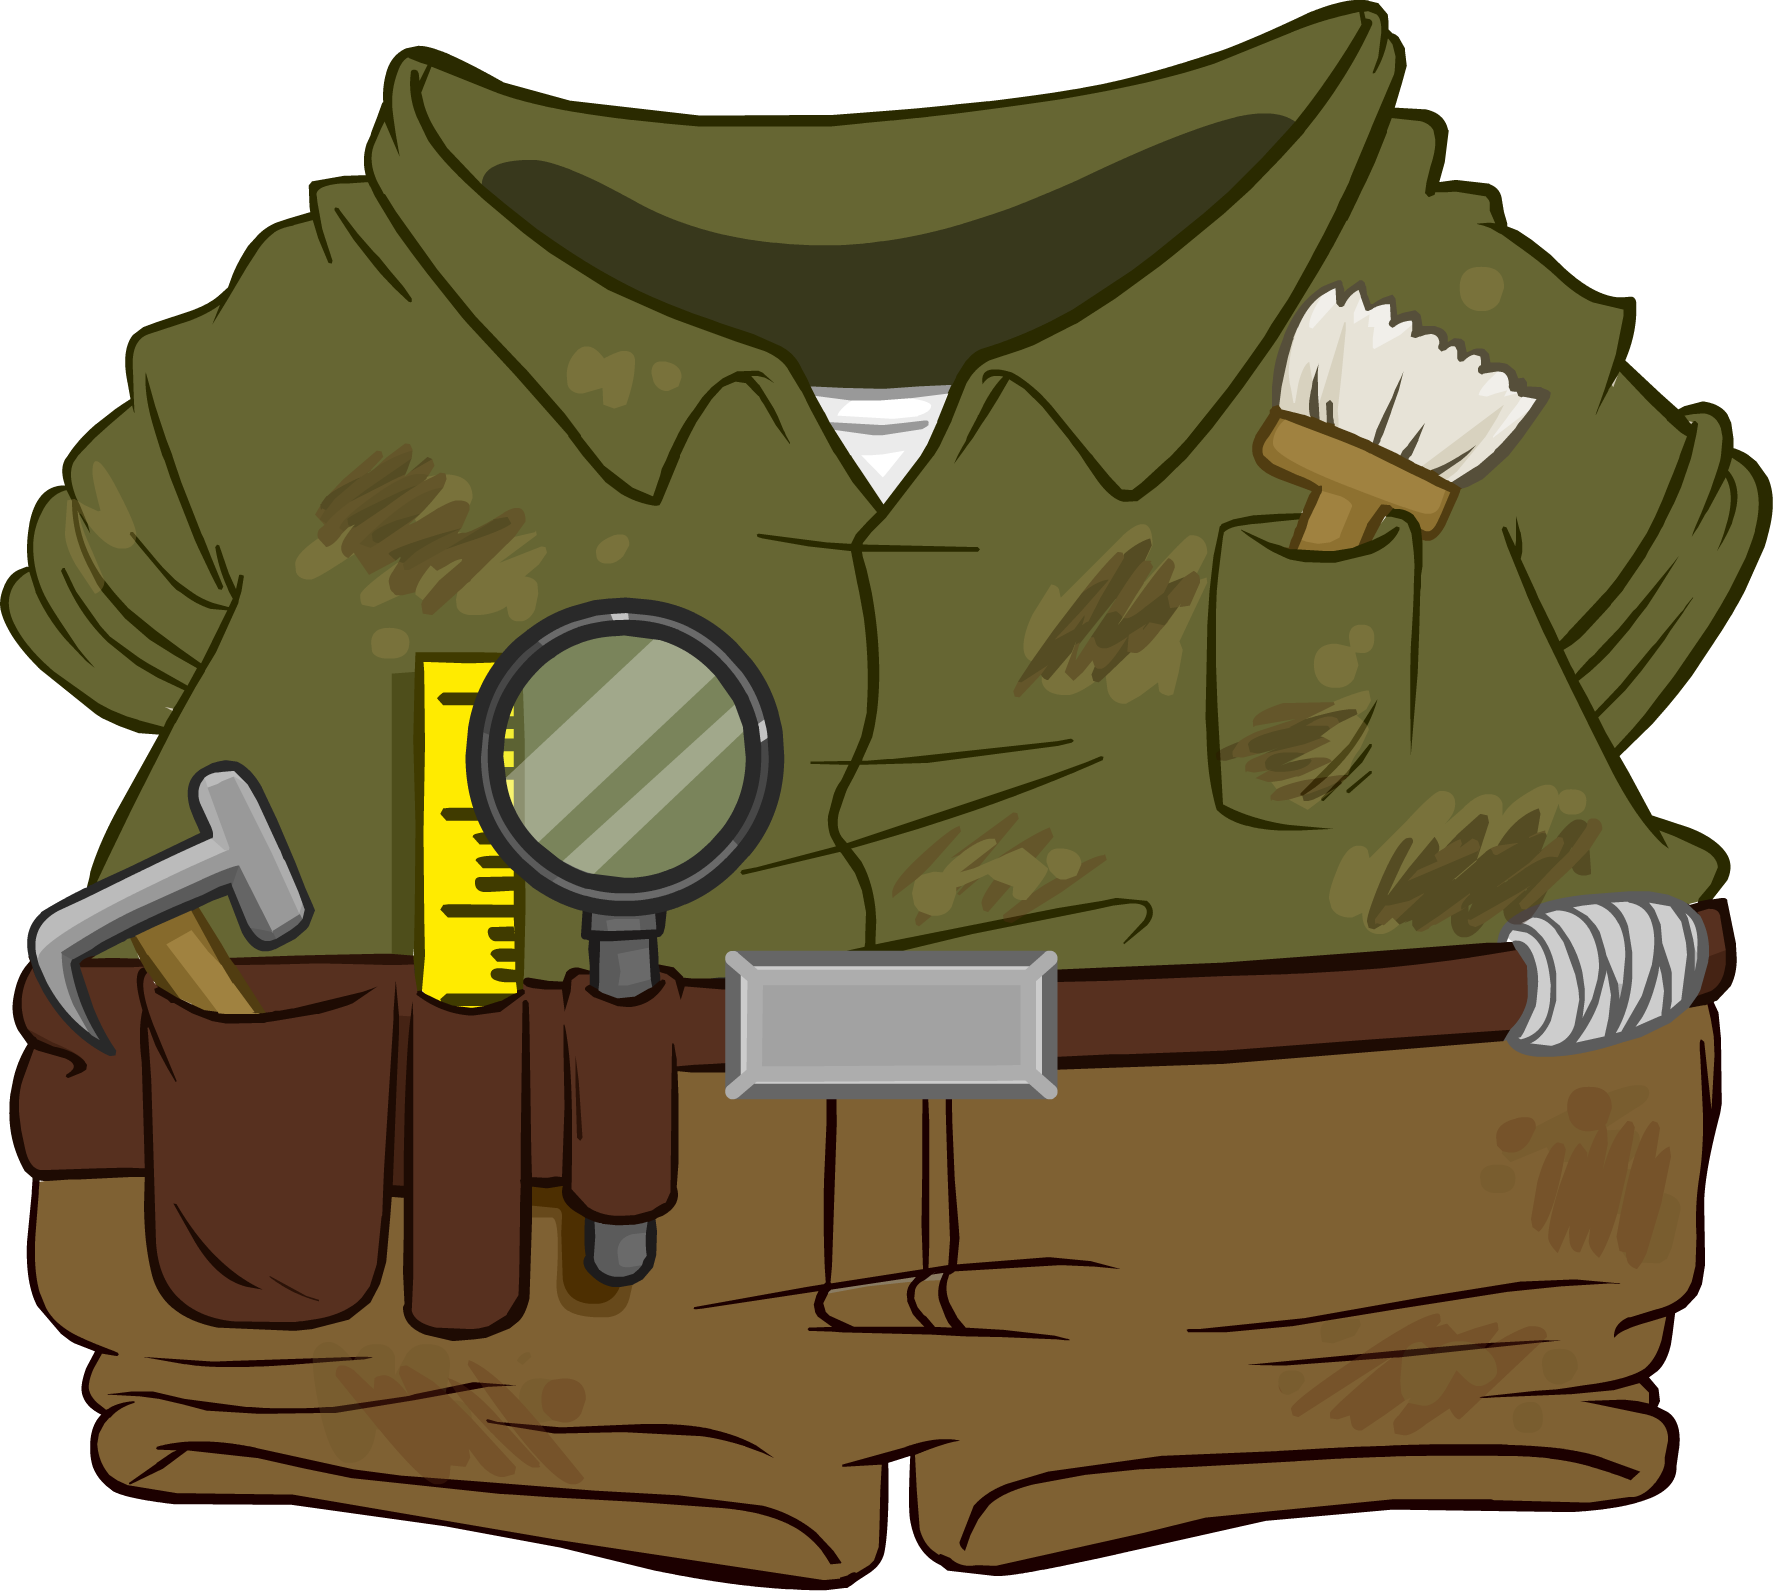 Brush clipart archaeology. Archaeologist outfit club penguin